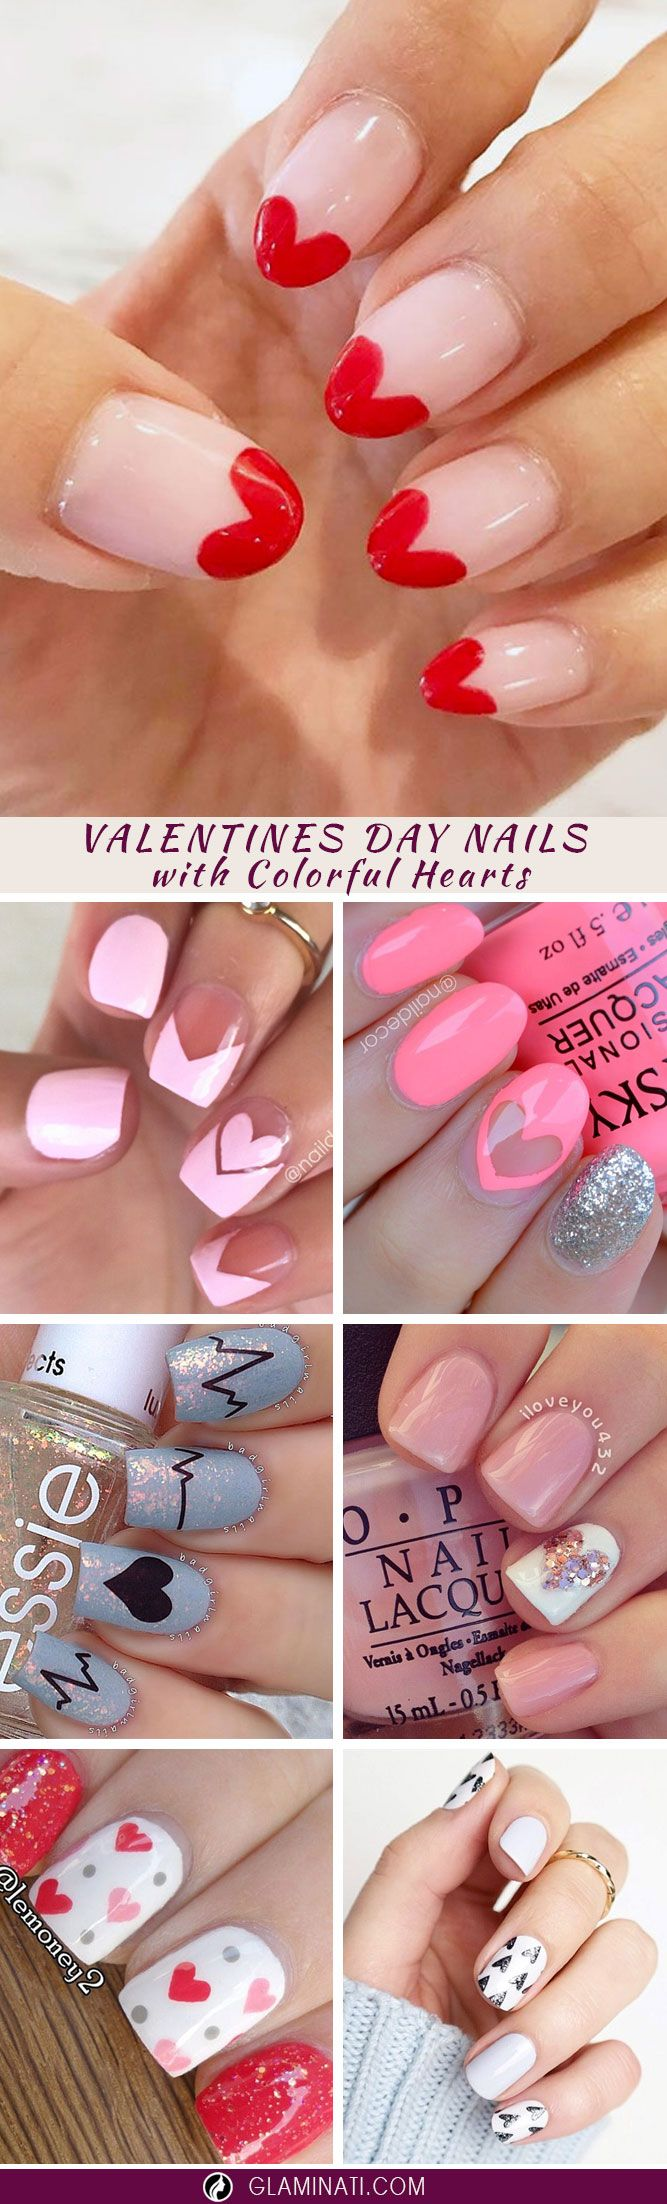 We have the best collection of Valentines Day nails, so you don't need to surf the net all day to find something flattering.